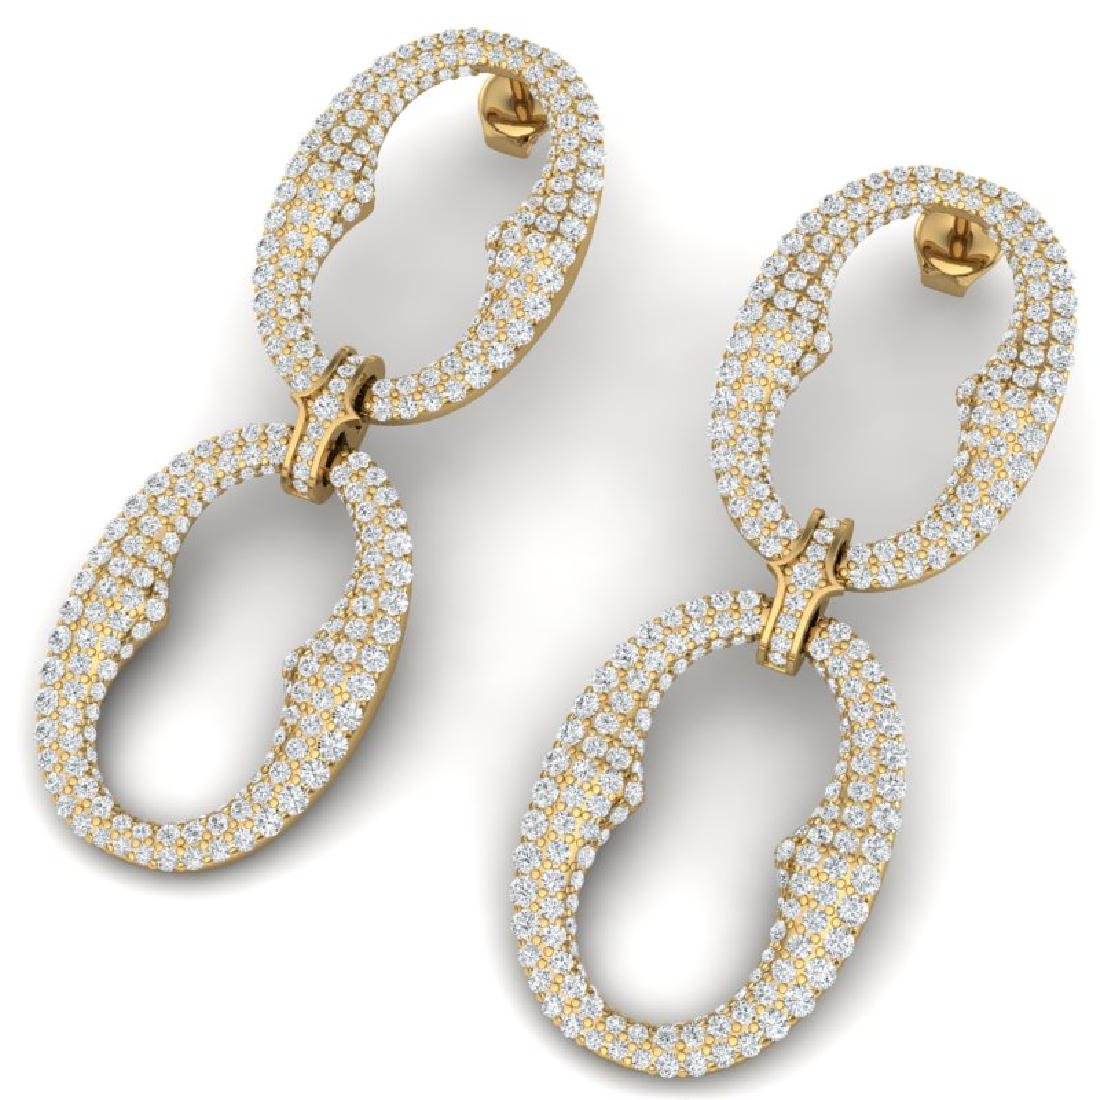 7 CTW Certified VS/SI Diamond Earrings 18K Yellow Gold